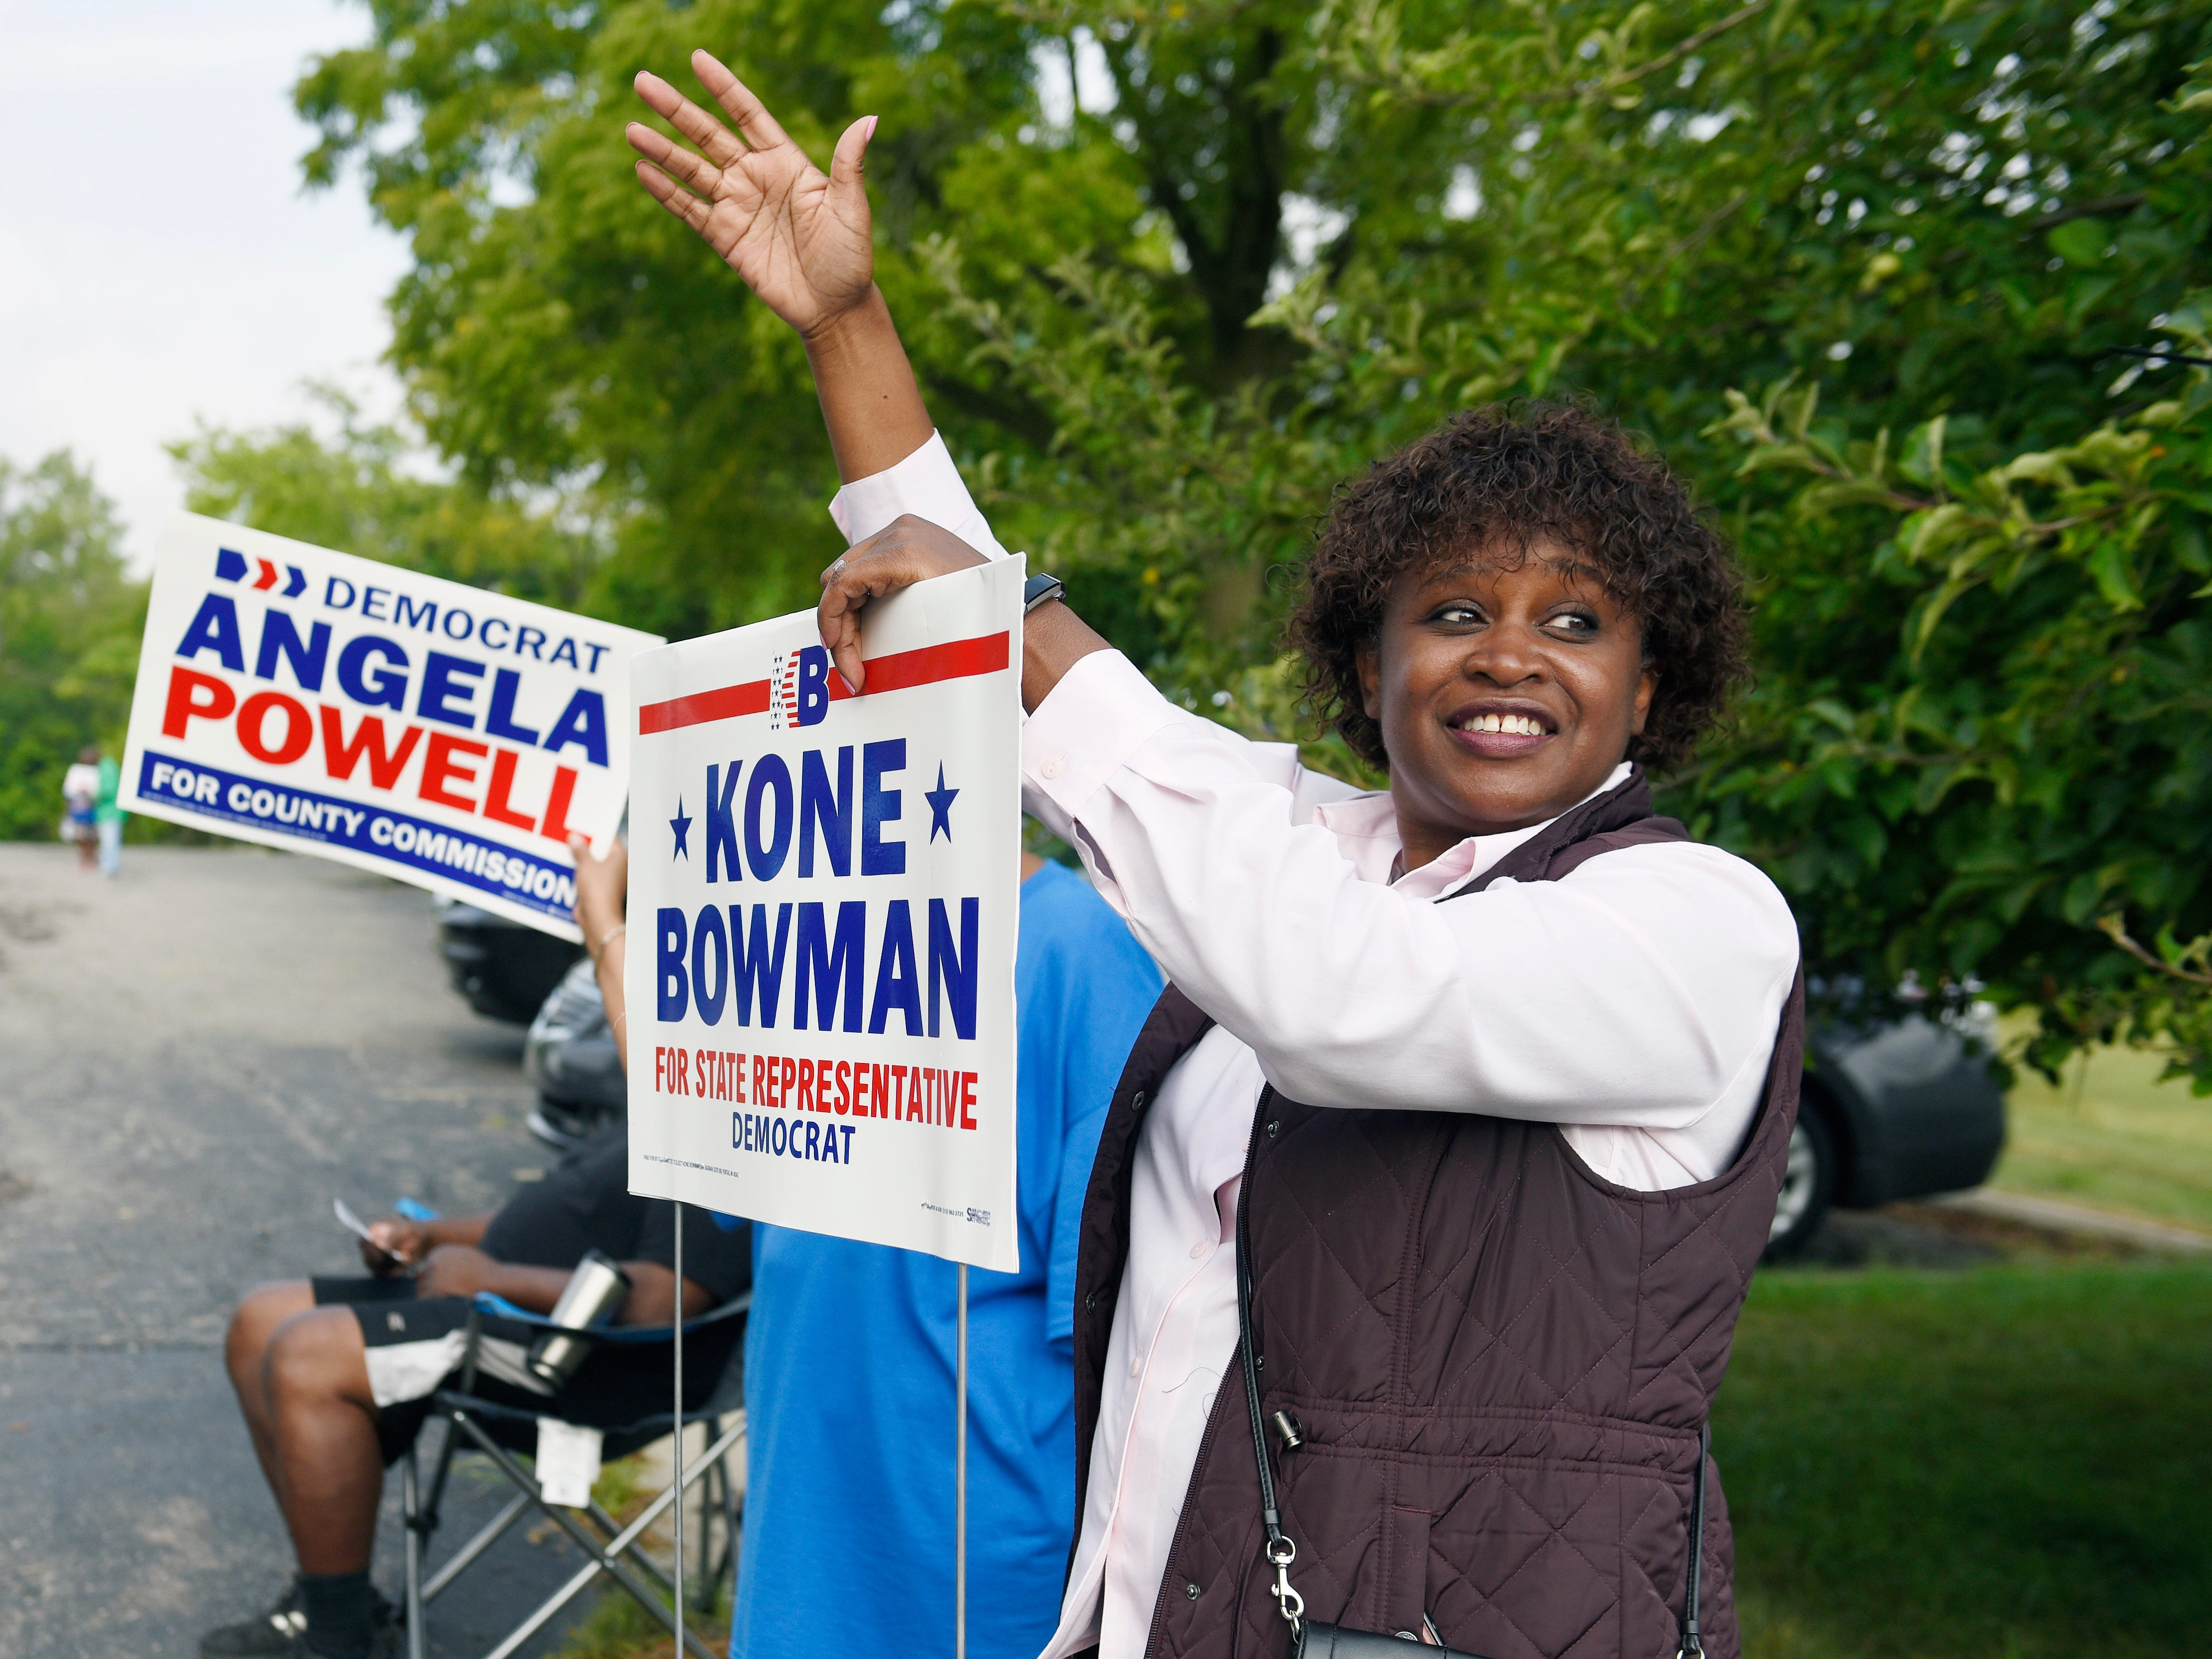 Weata Powell, volunteer worker for Kone Bowman, waves to voters as they arrive to cast their votes at New Bethel Missionary Baptist church this morning.**Voters and campaign workers at New Bethel Missionary Baptist church. August 7, 2018, Pontiac, MI. (ClarenceTabb Jr./Detroit News)